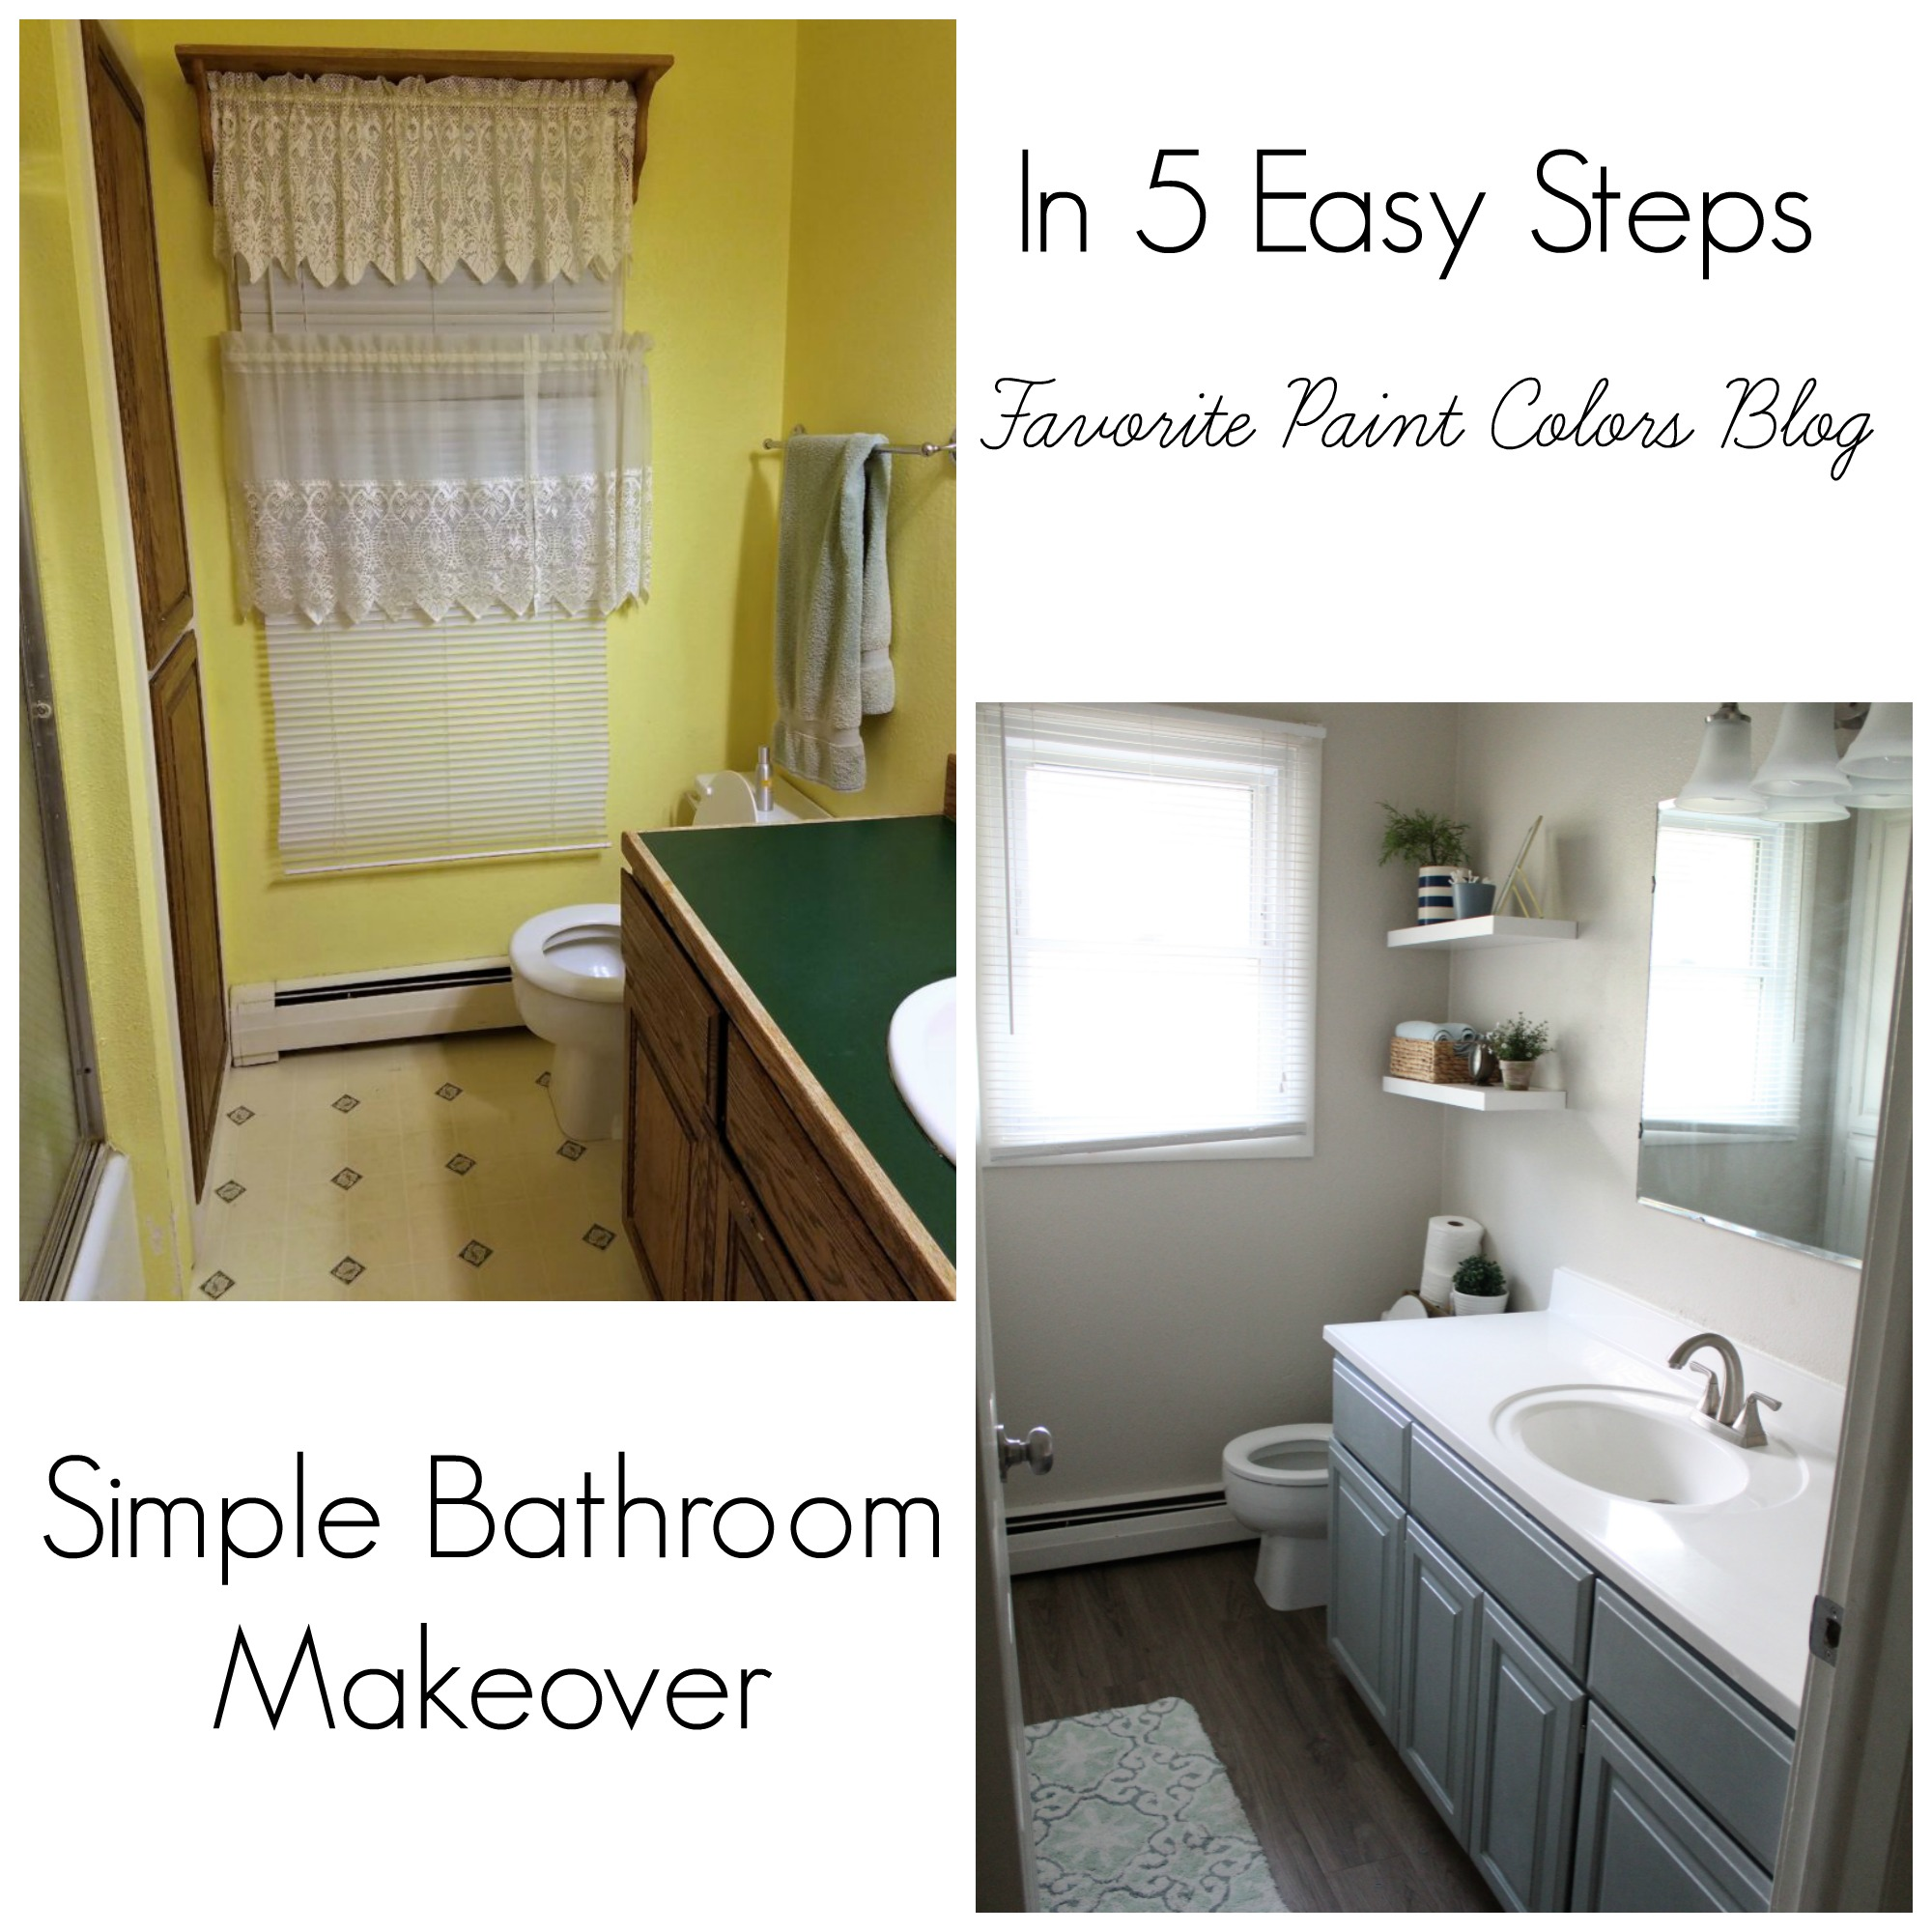 Simple Bathroom: Simple Bathroom Makeover In 5 Easy Steps